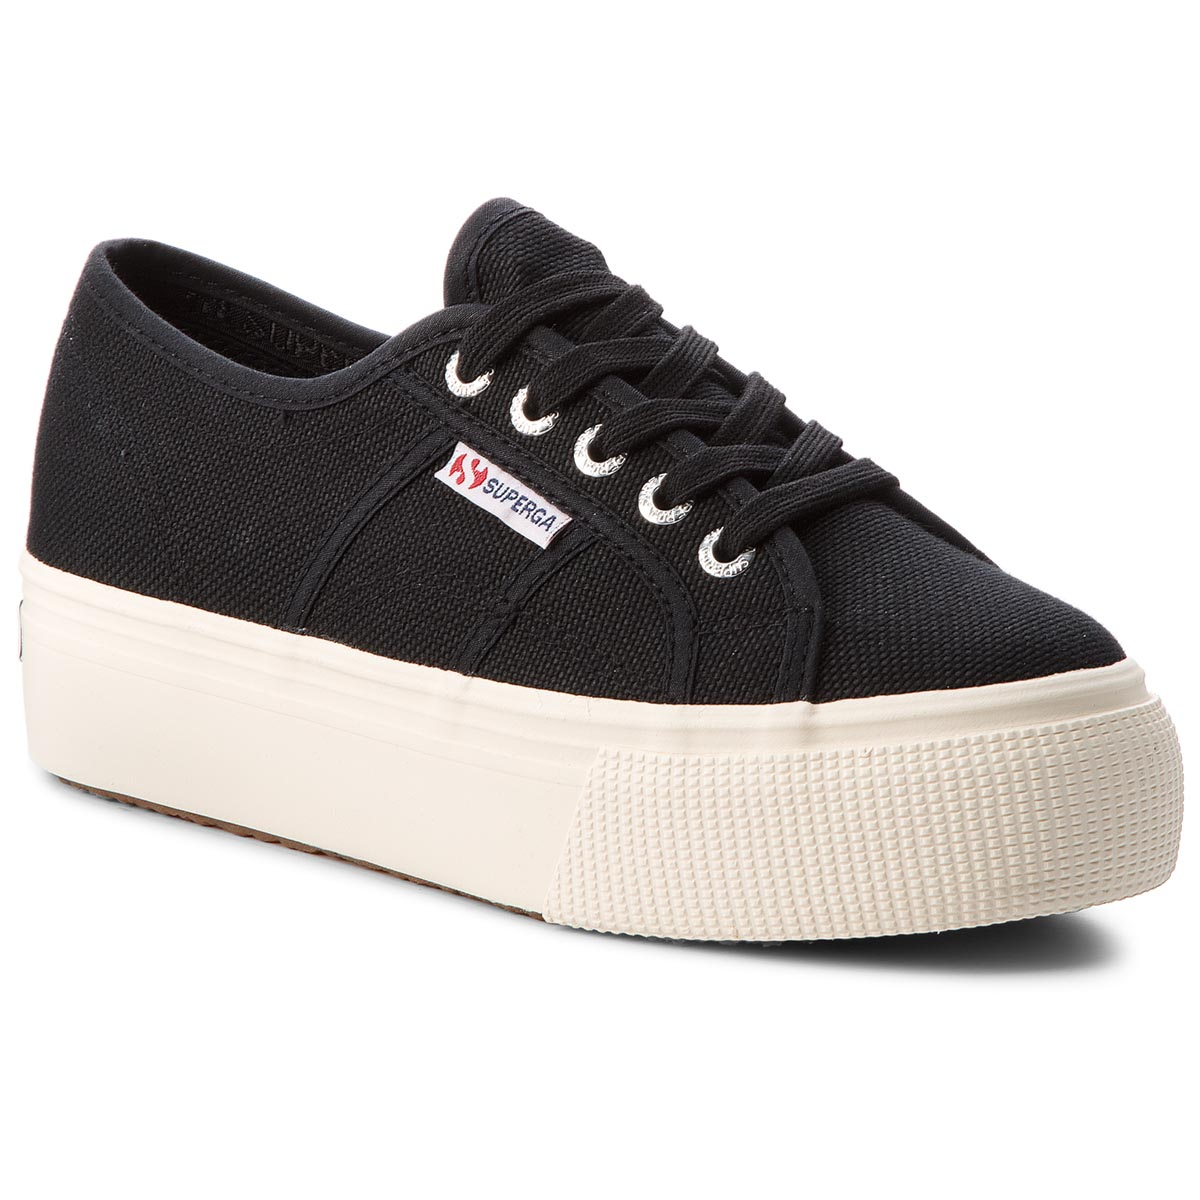 Tenisówki SUPERGA - 2790 Acotw Linea Up And Down S0001L0 Black